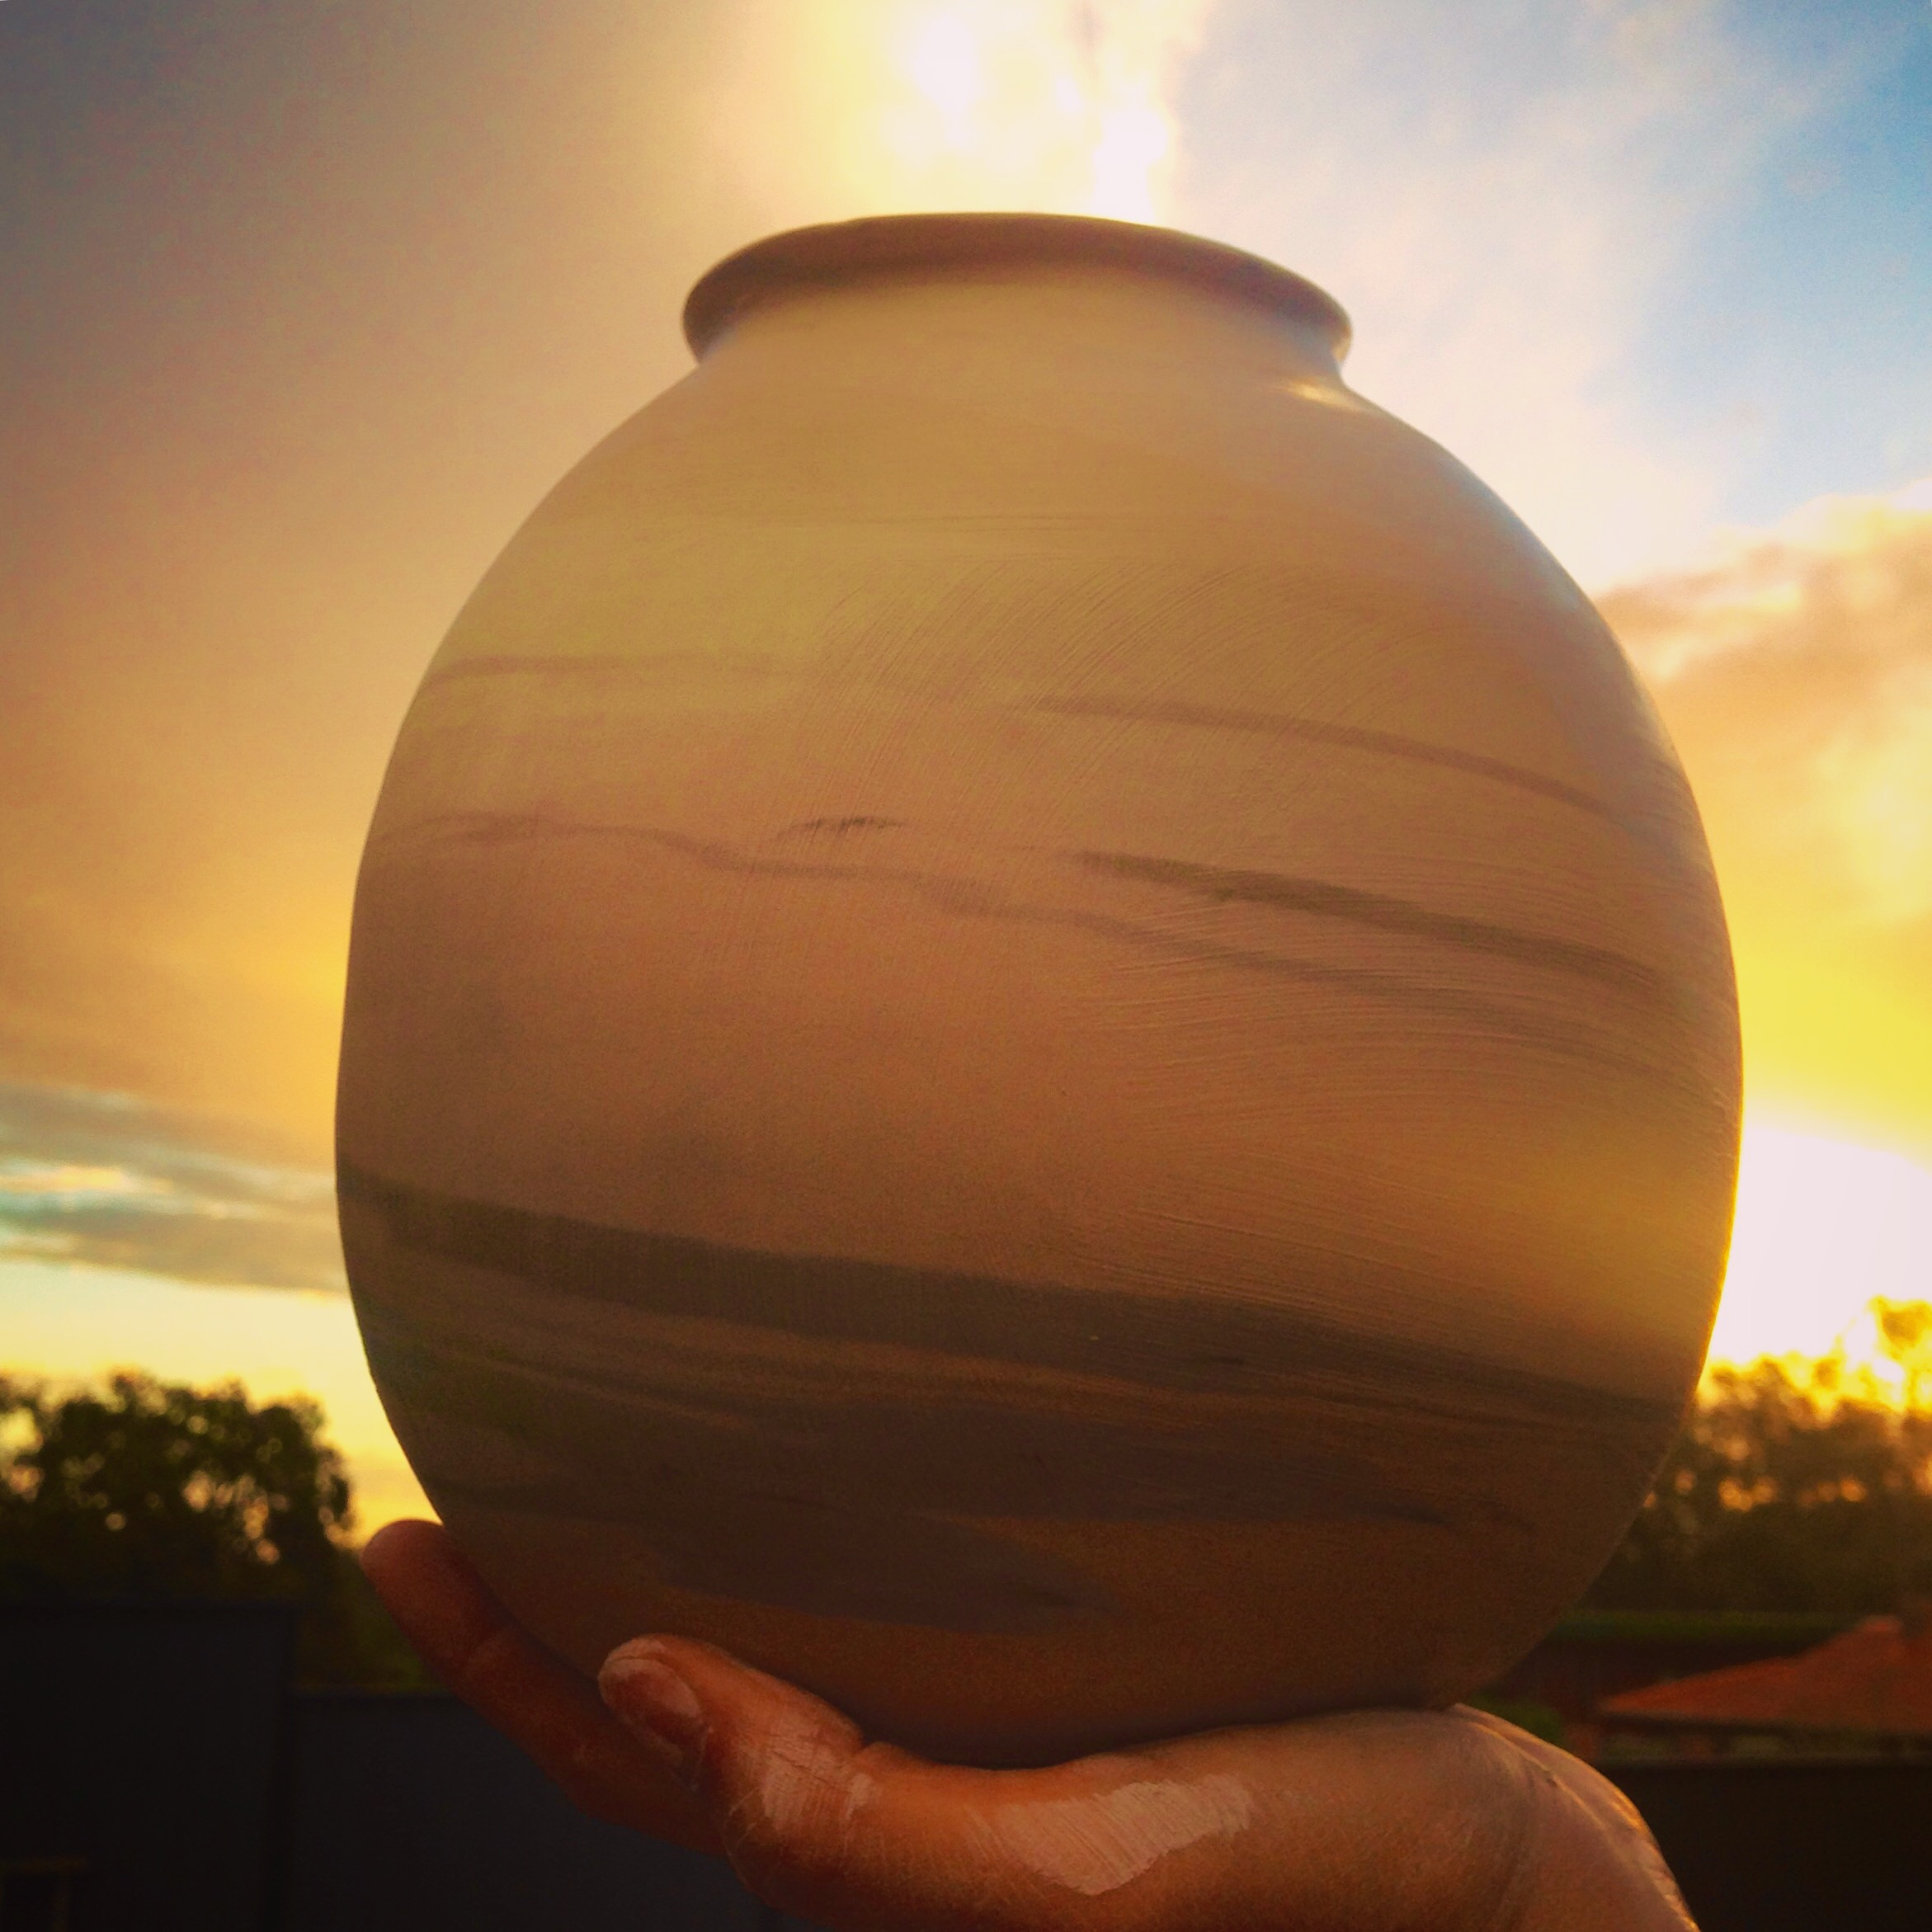 A moment in time captured- as it turns to dusk and the sun starts to set, the heavy storm clouds give way to the light. Photo taken at my studio as I have just finished throwing this vessel on the wheel.